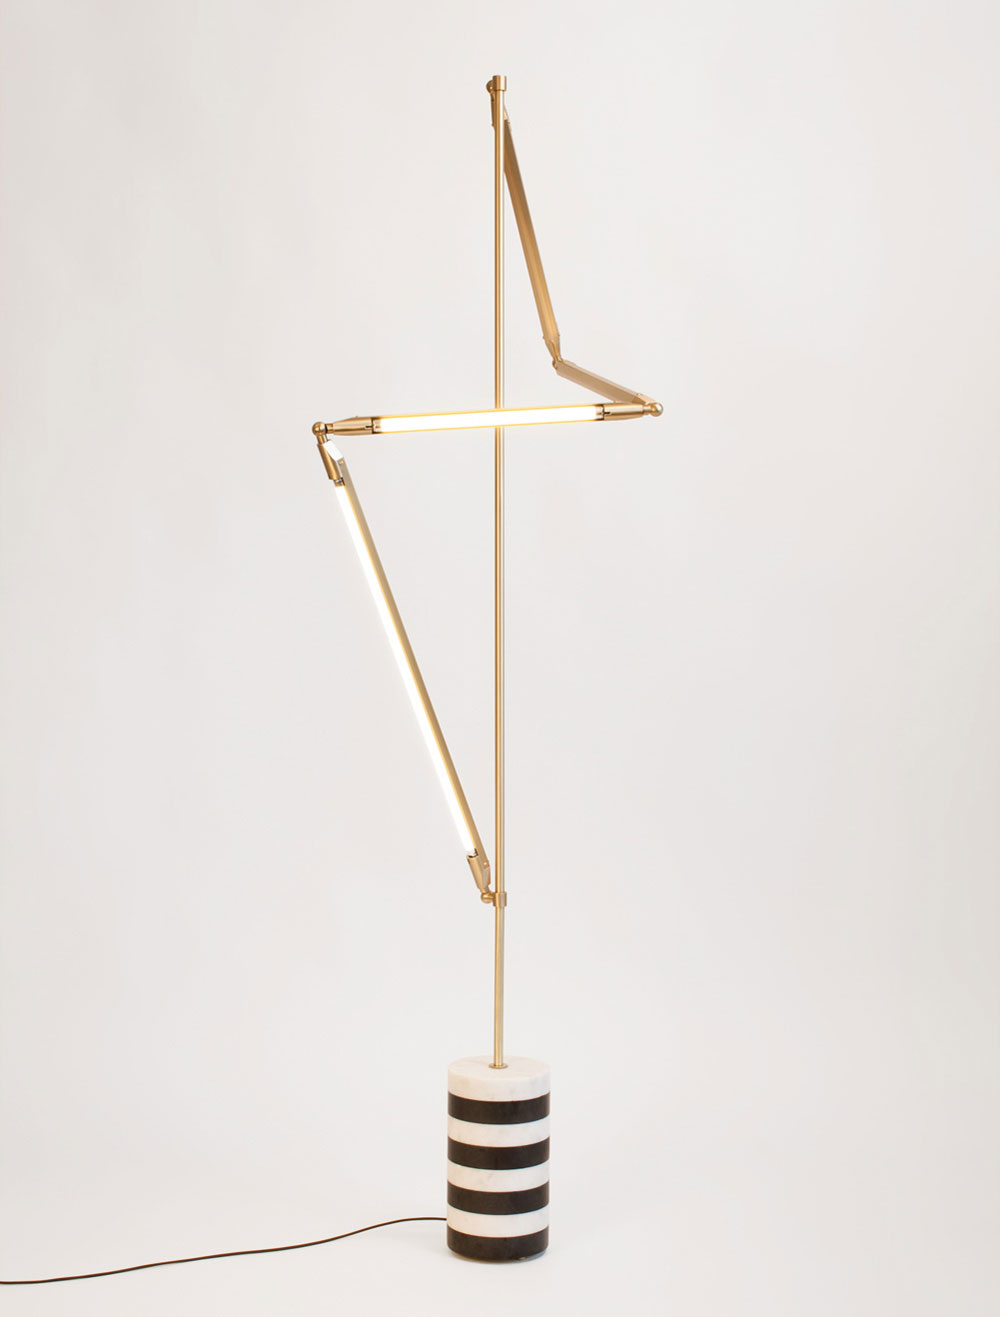 Sculptural Geometric Lighting by Bec Brittain | Yellowtrace